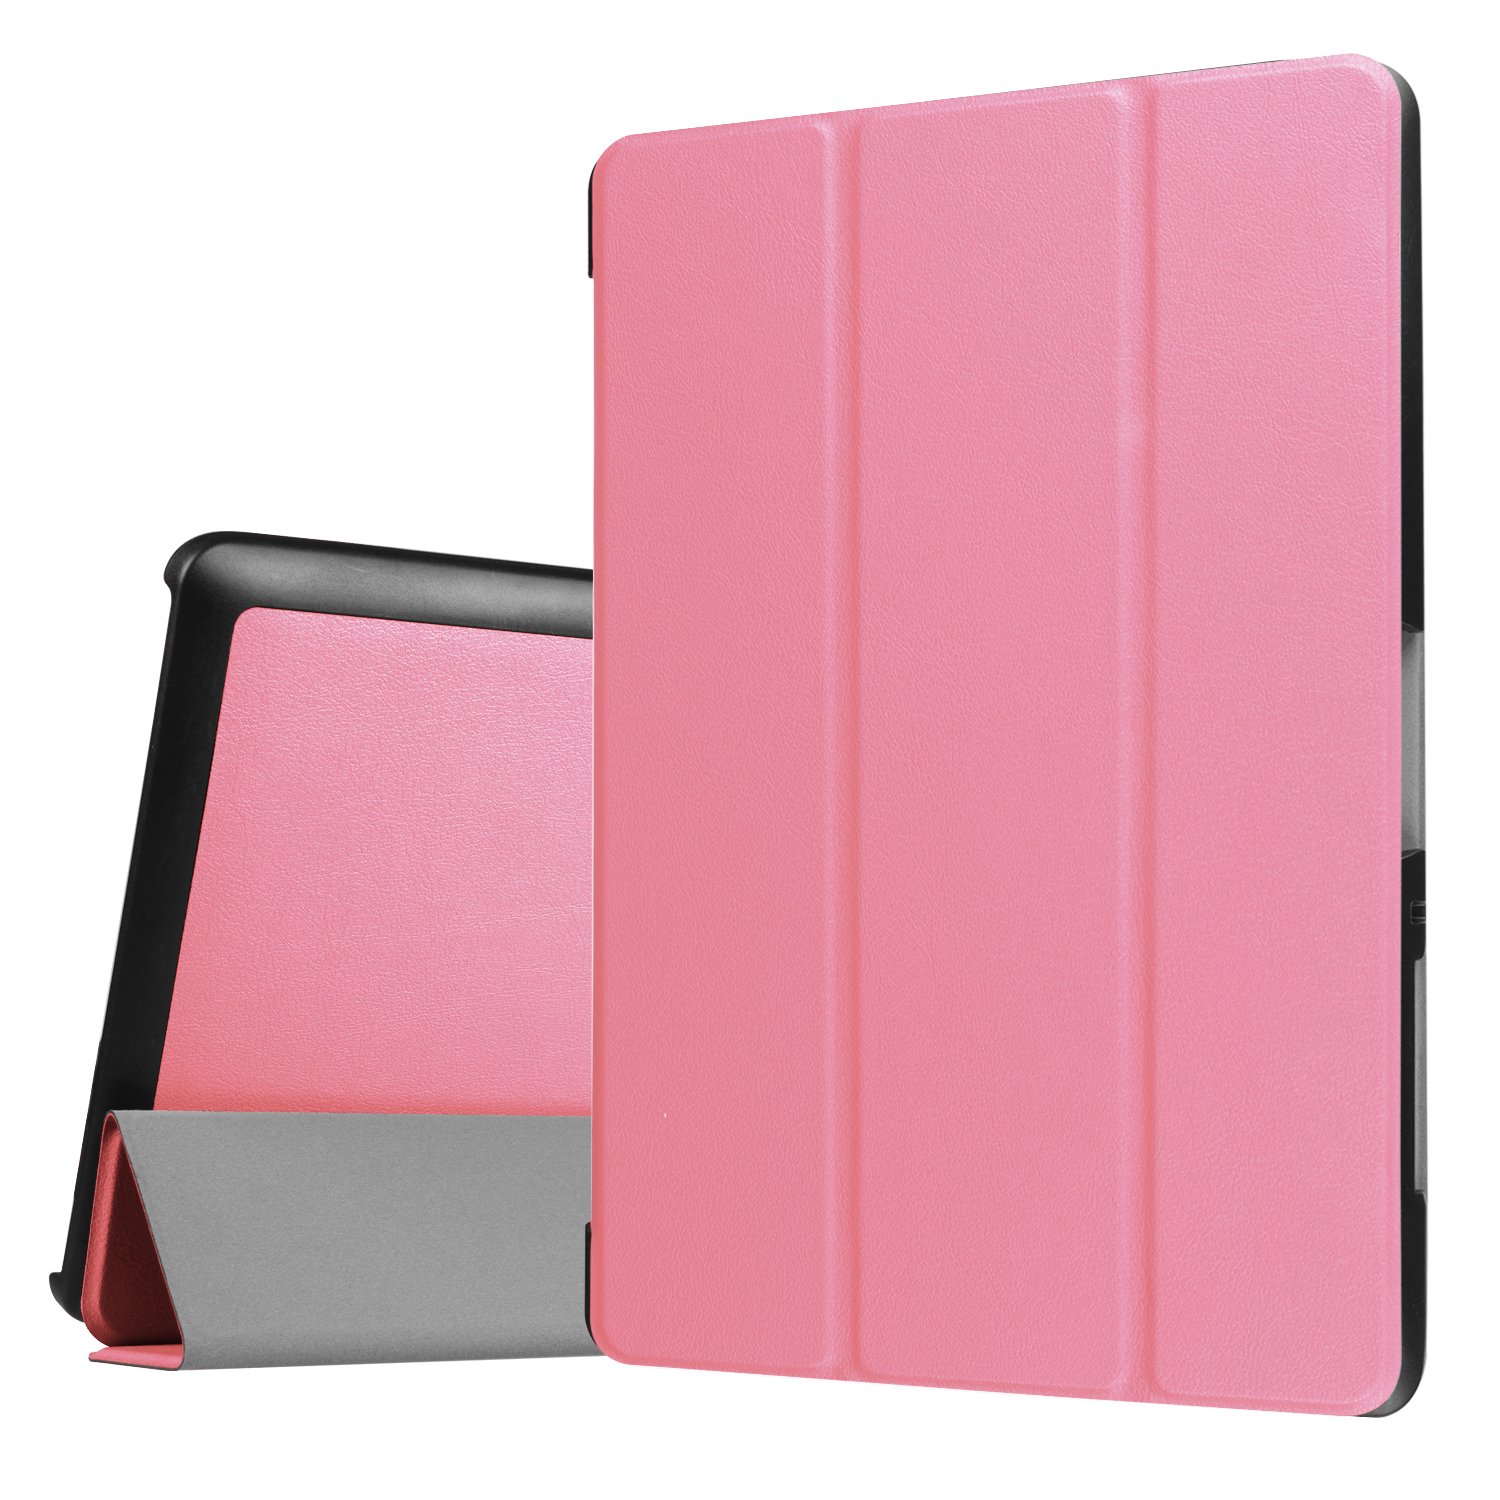 For Acer Iconia one 10 B3-A30 Case Flip Cover for Acer Iconia Tab 10 A3-A40 Tablet 3 Fold Stand Leather Fundas Shell+Stylus